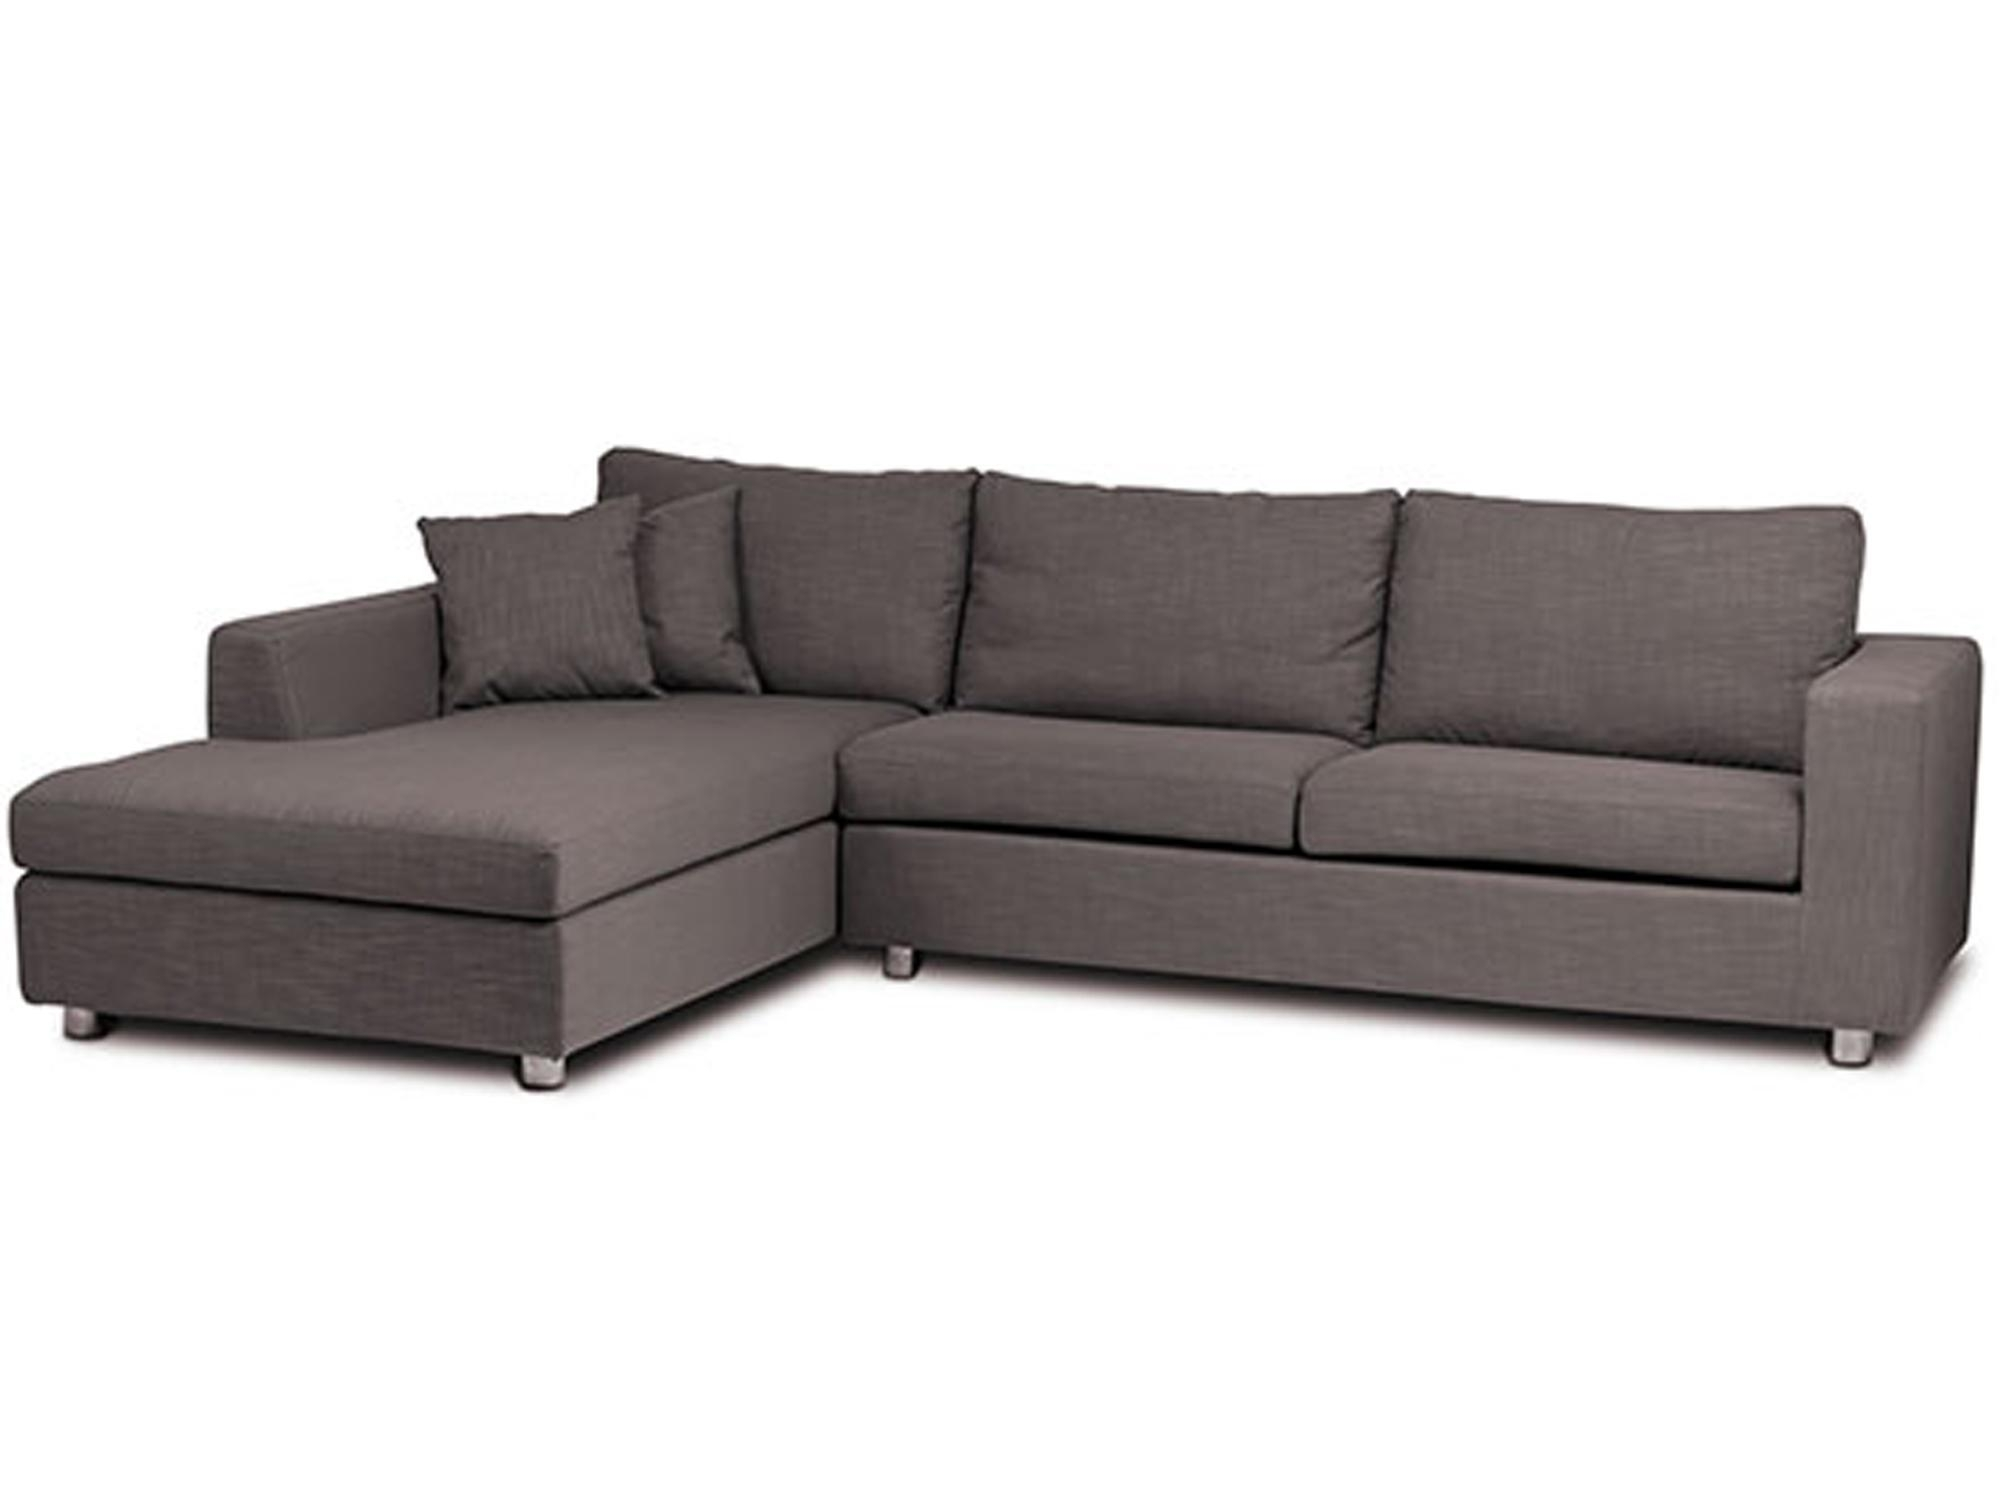 Sofas Center : Formidable Corner Sofa Picture Ideas Beds Uk Cheap Inside Cheap Corner Sofa Beds (View 9 of 20)